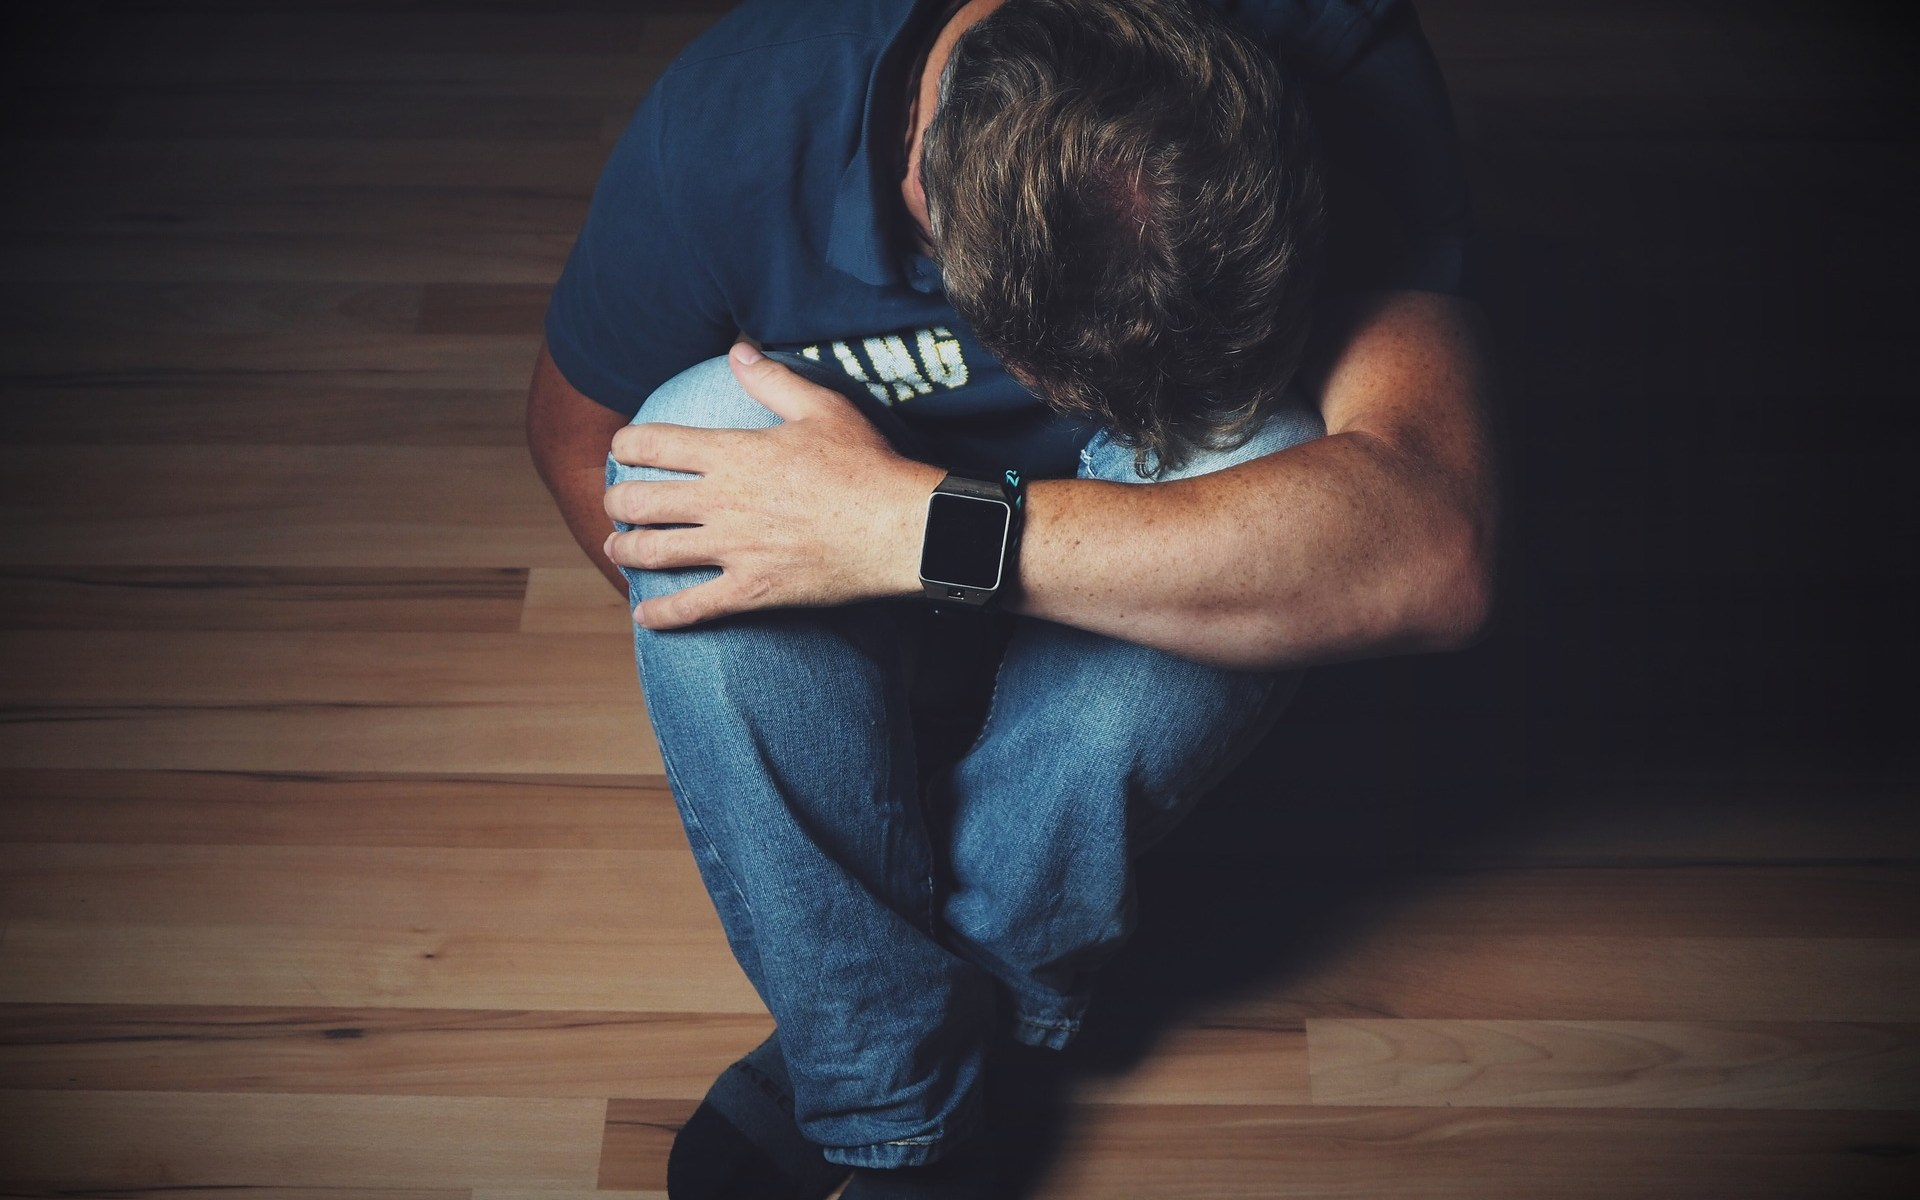 Depressed man sitting on wooden floor with head down on lap